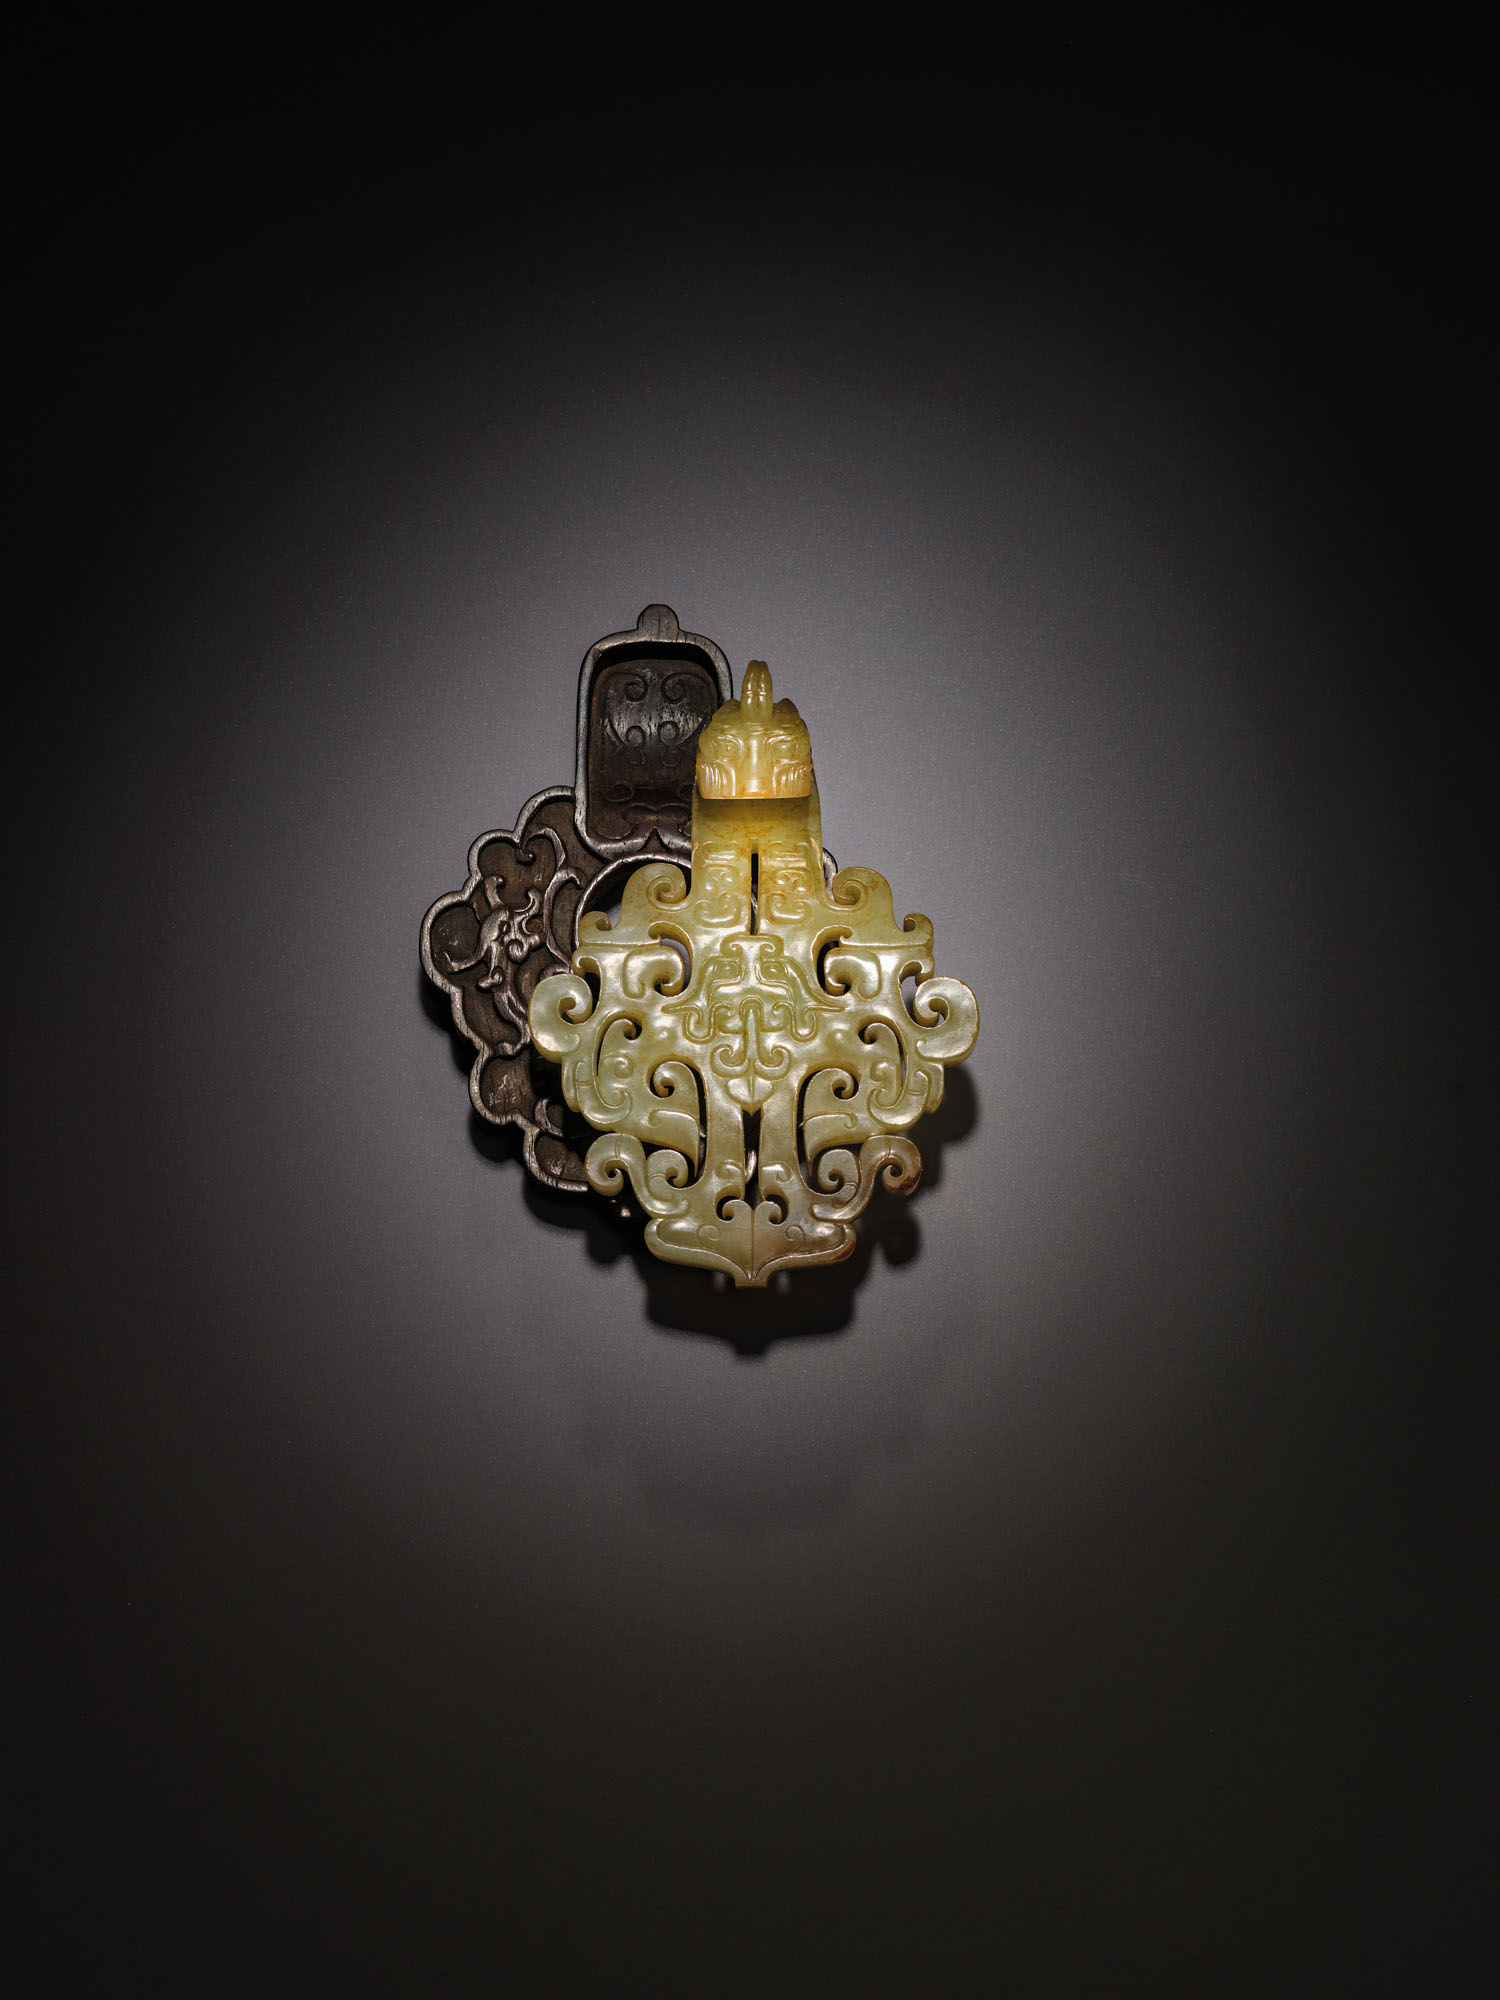 AN EXCEPTIONALLY RARE AND IMPORTANT YELLOW JADE BELT HOOK, DAIGOU